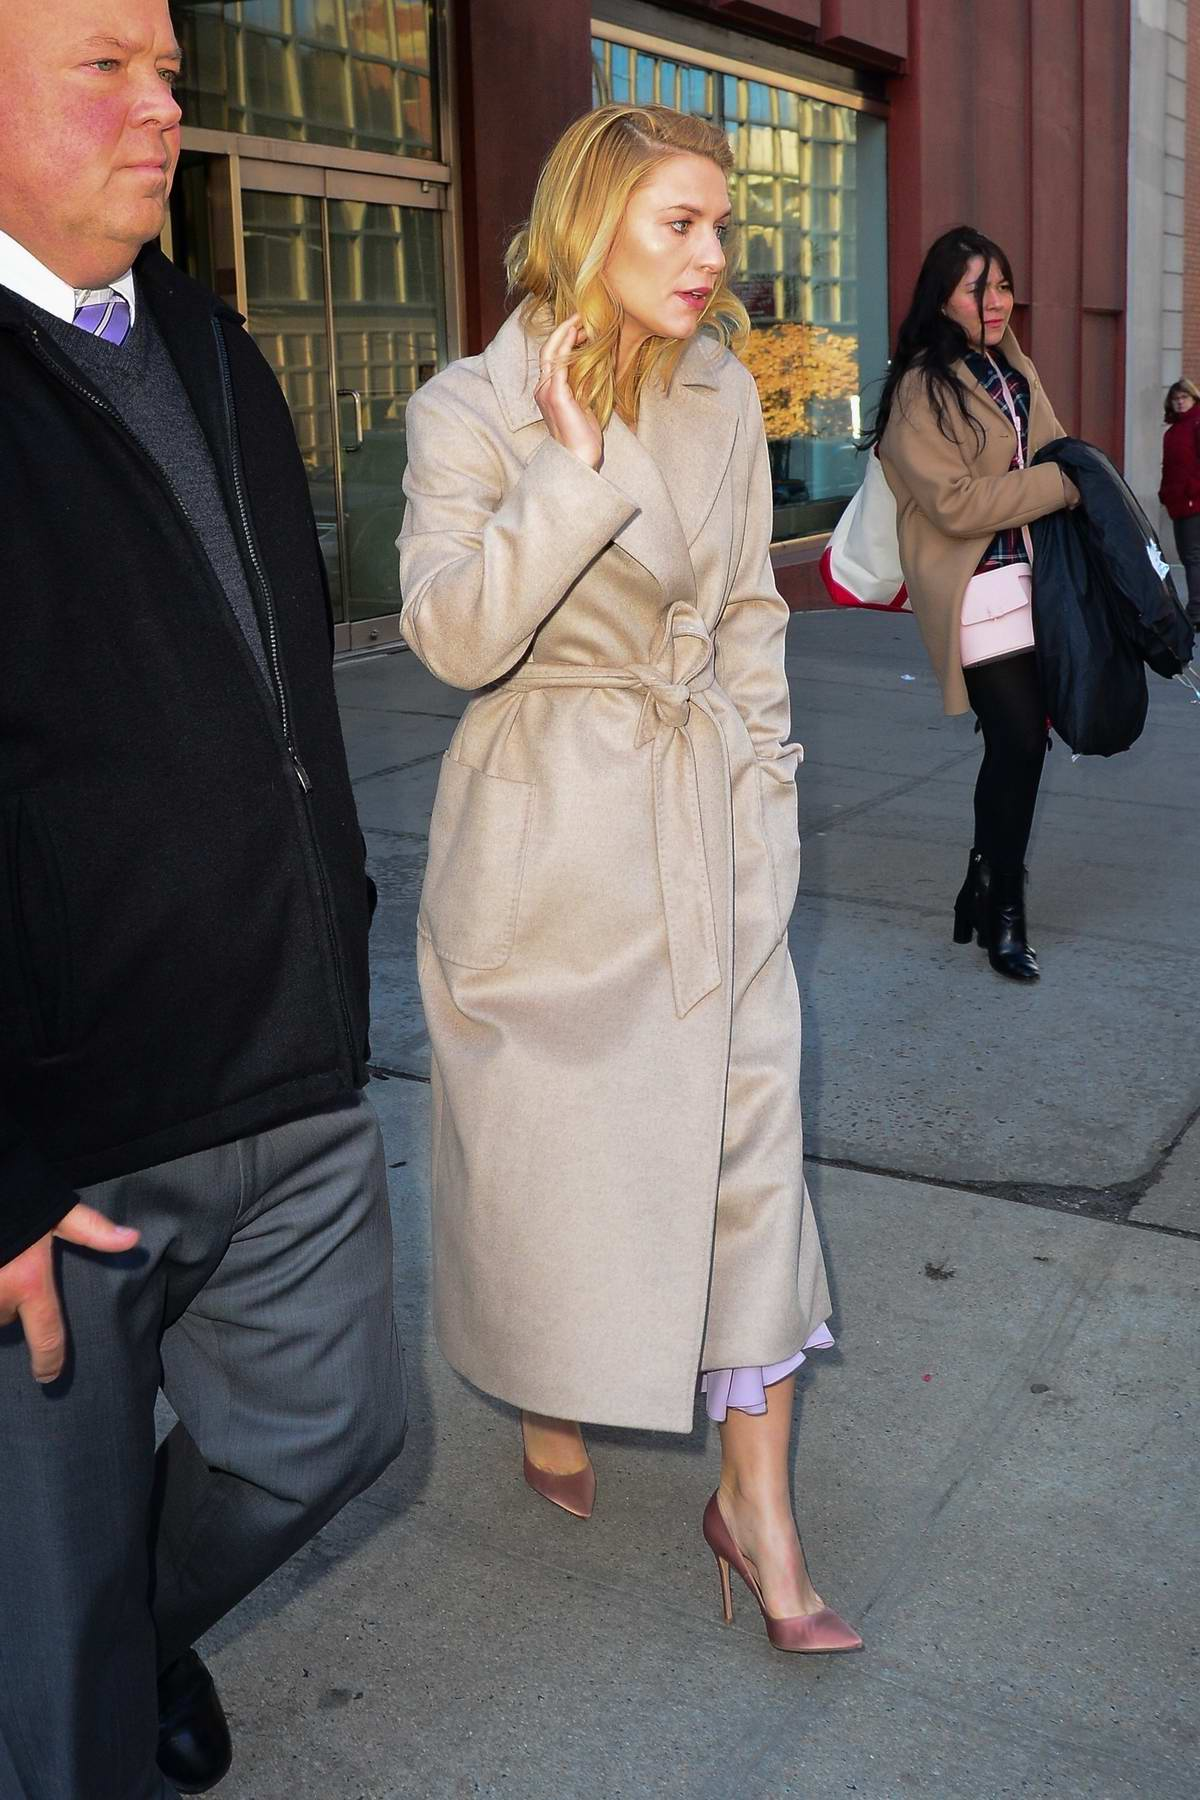 Claire Danes leaving 'CBS Morning Show' after doing a promo event in New York City